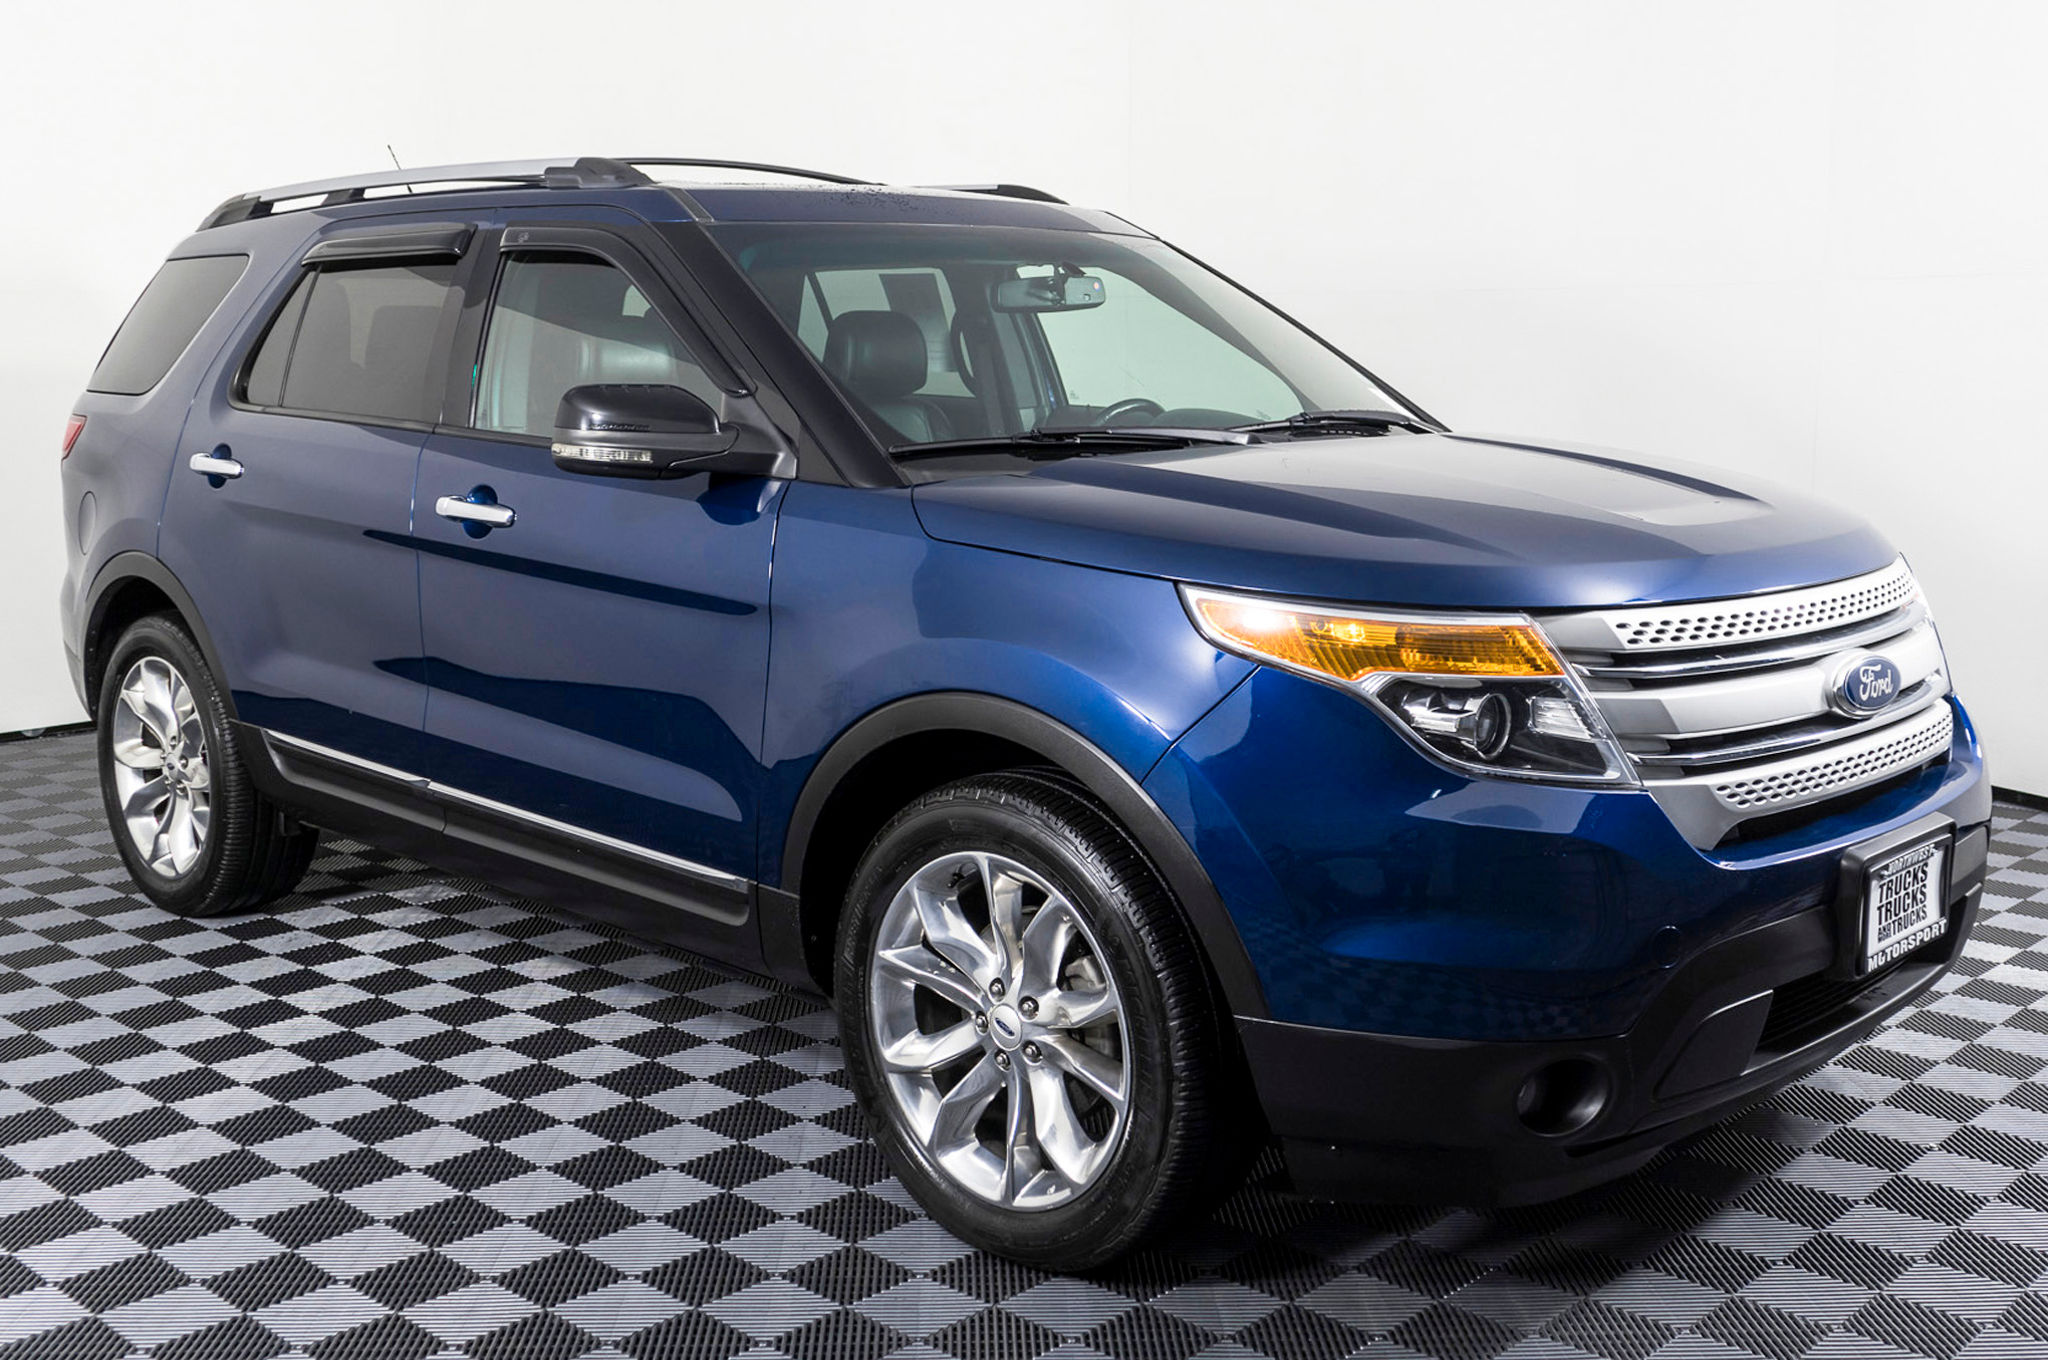 Used 2012 Ford Explorer XLT 4x4 SUV For Sale